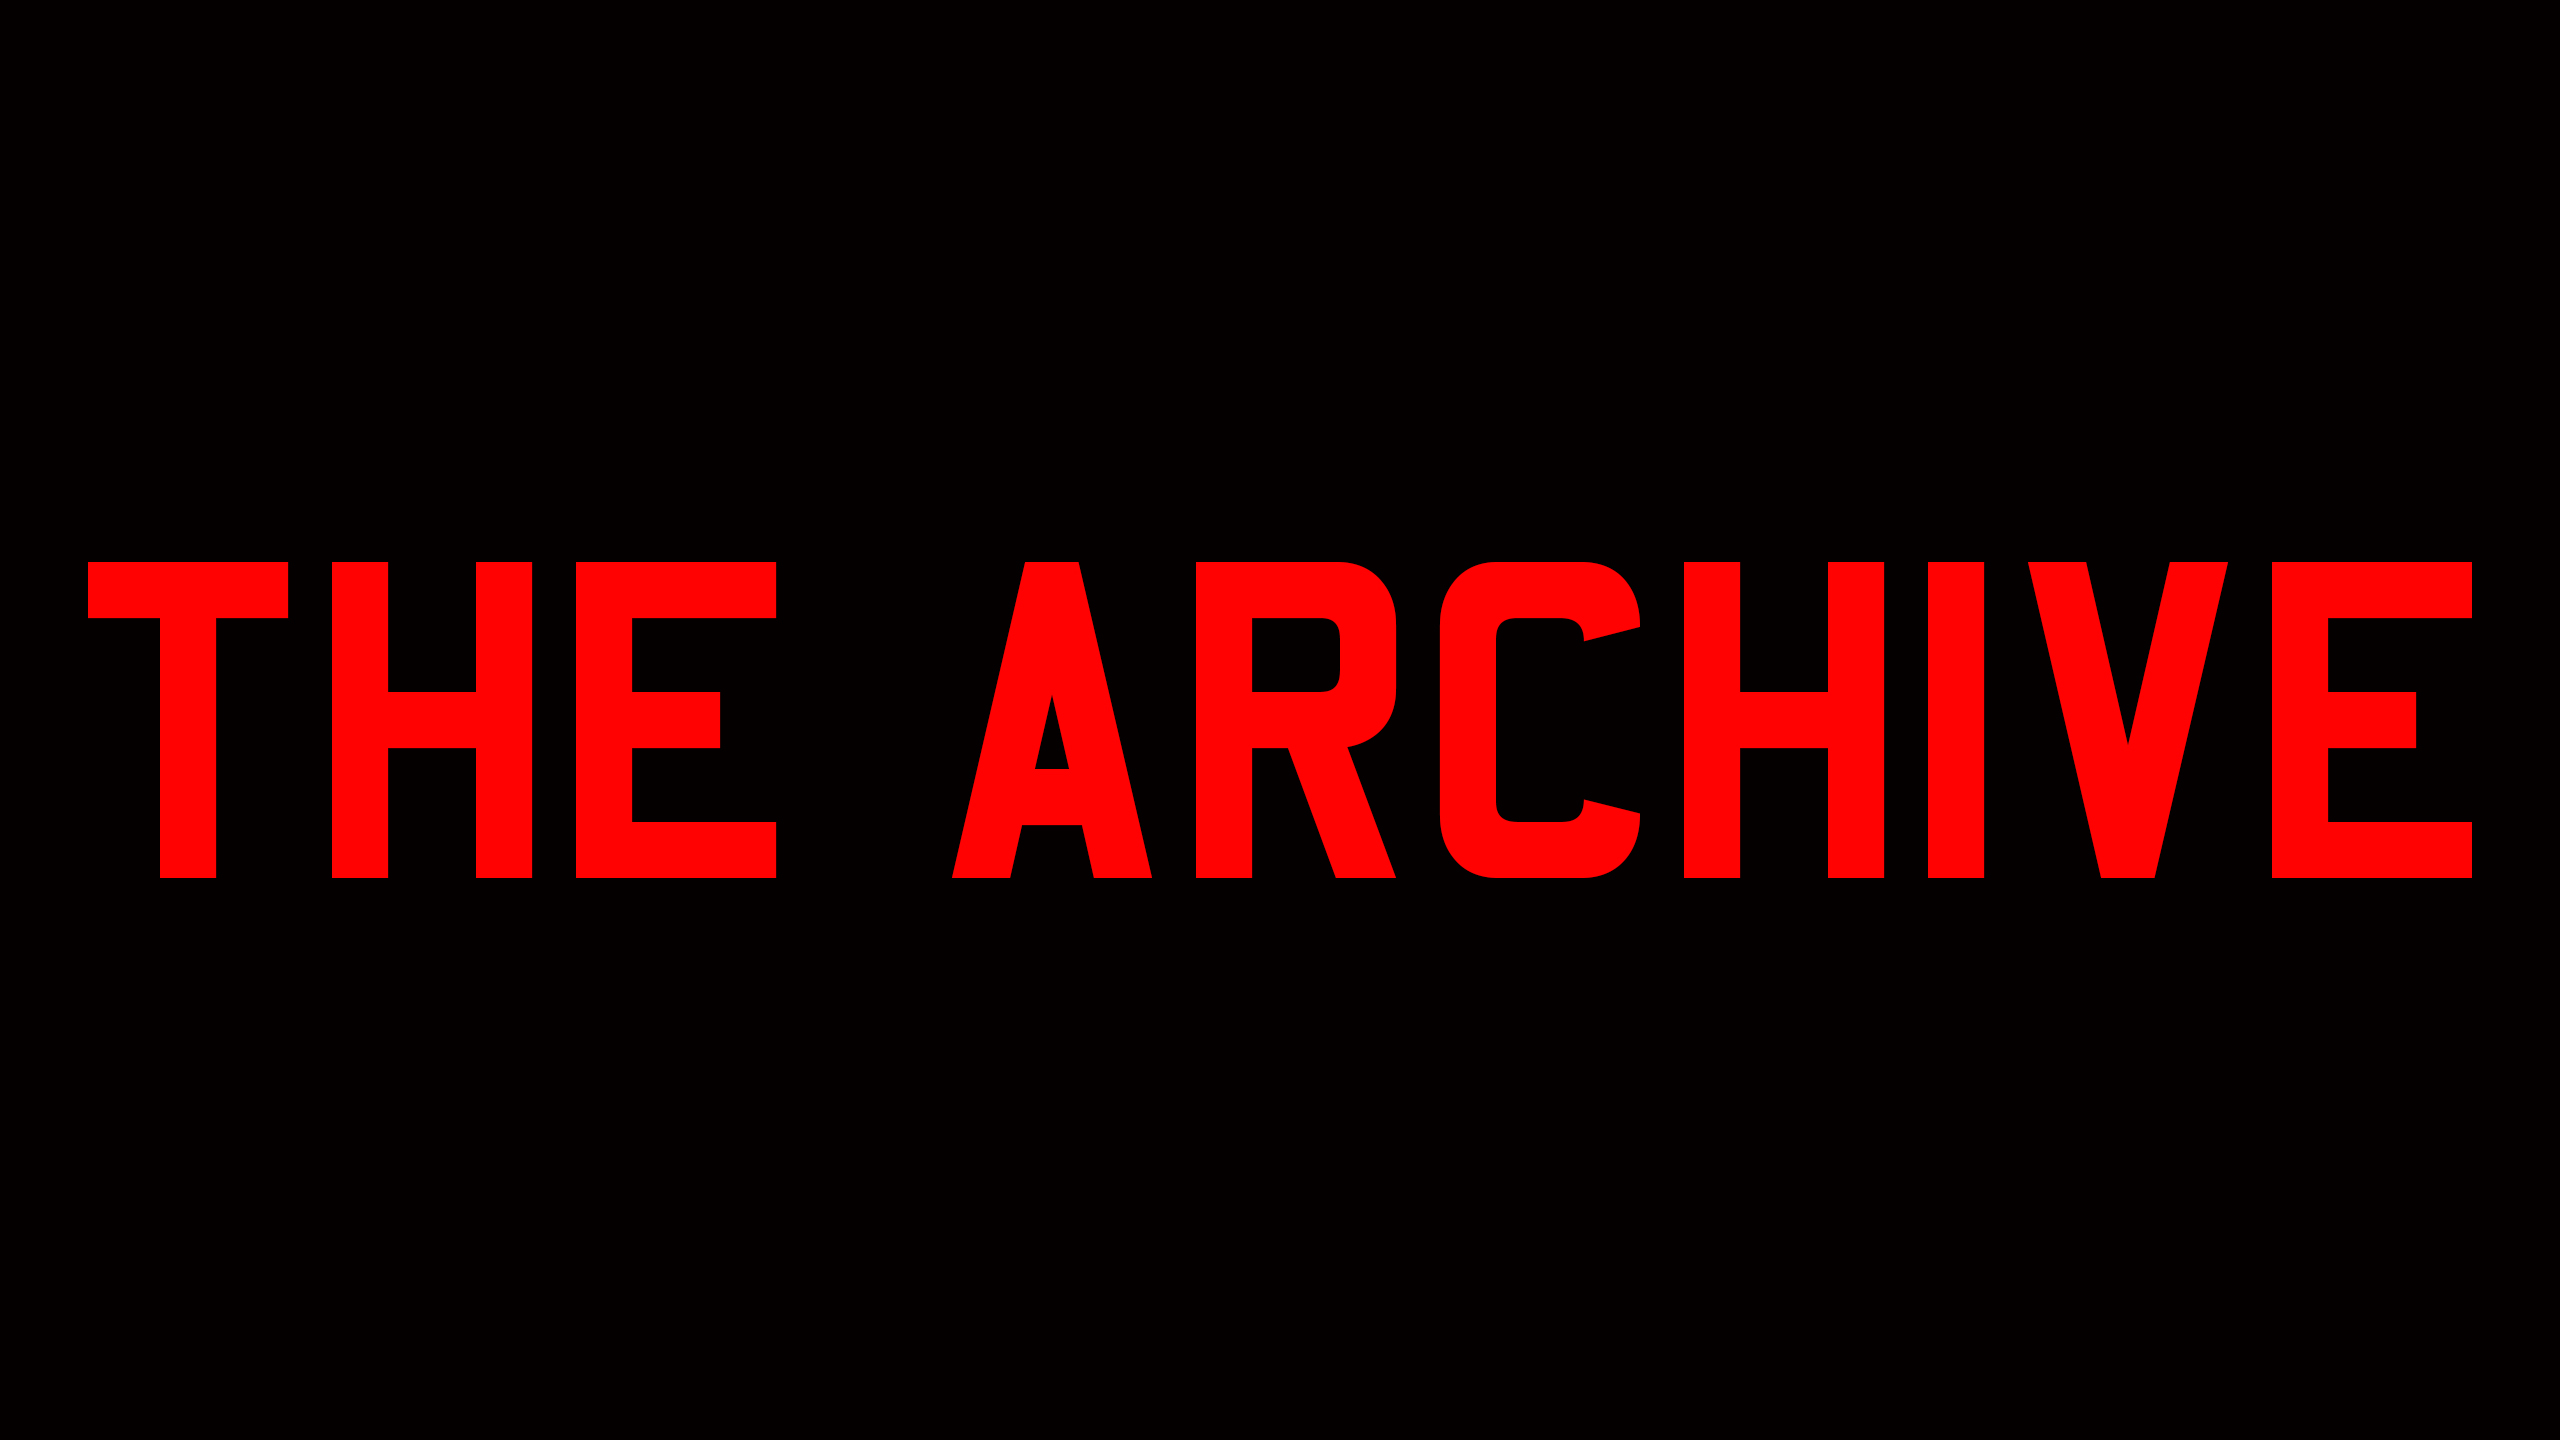 The Archive - Episode 1: Conform